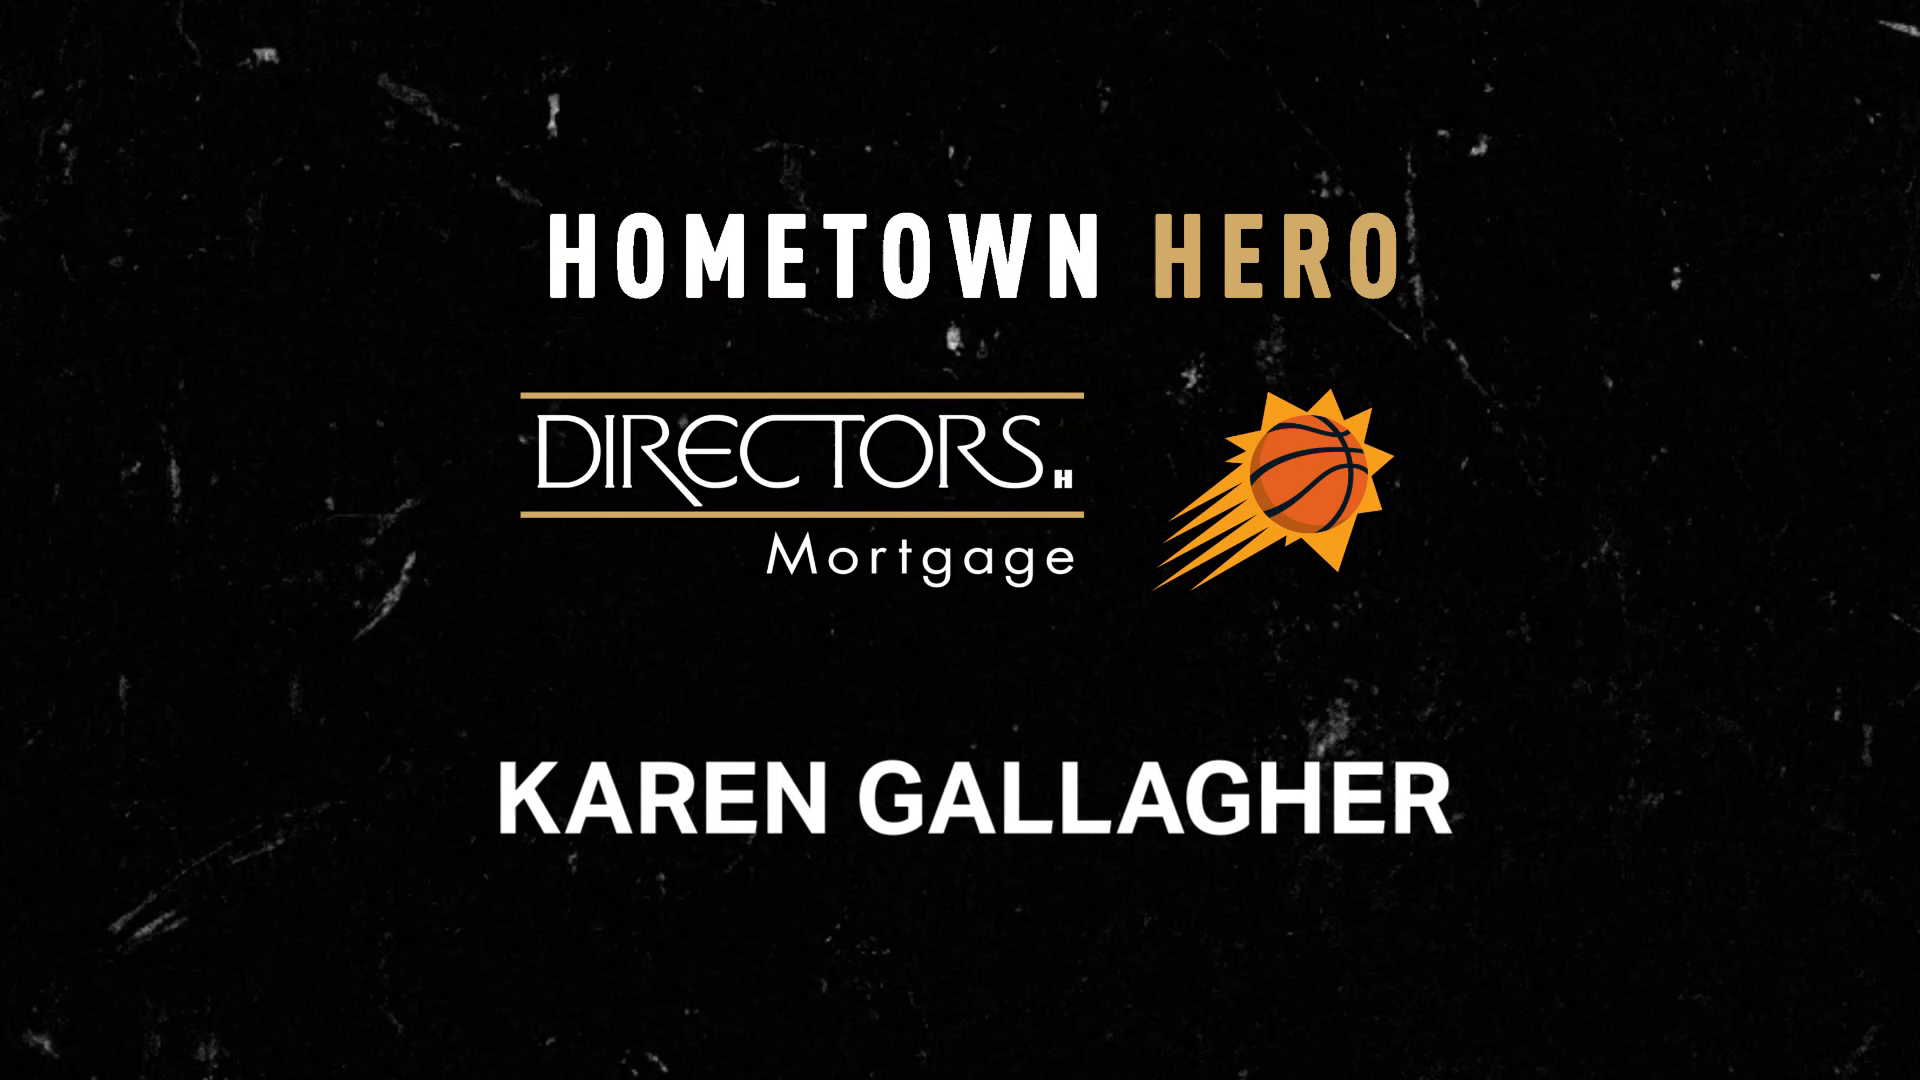 Karen Gallagher | Directors Mortgage Hometown Hero Honoree 2020-21